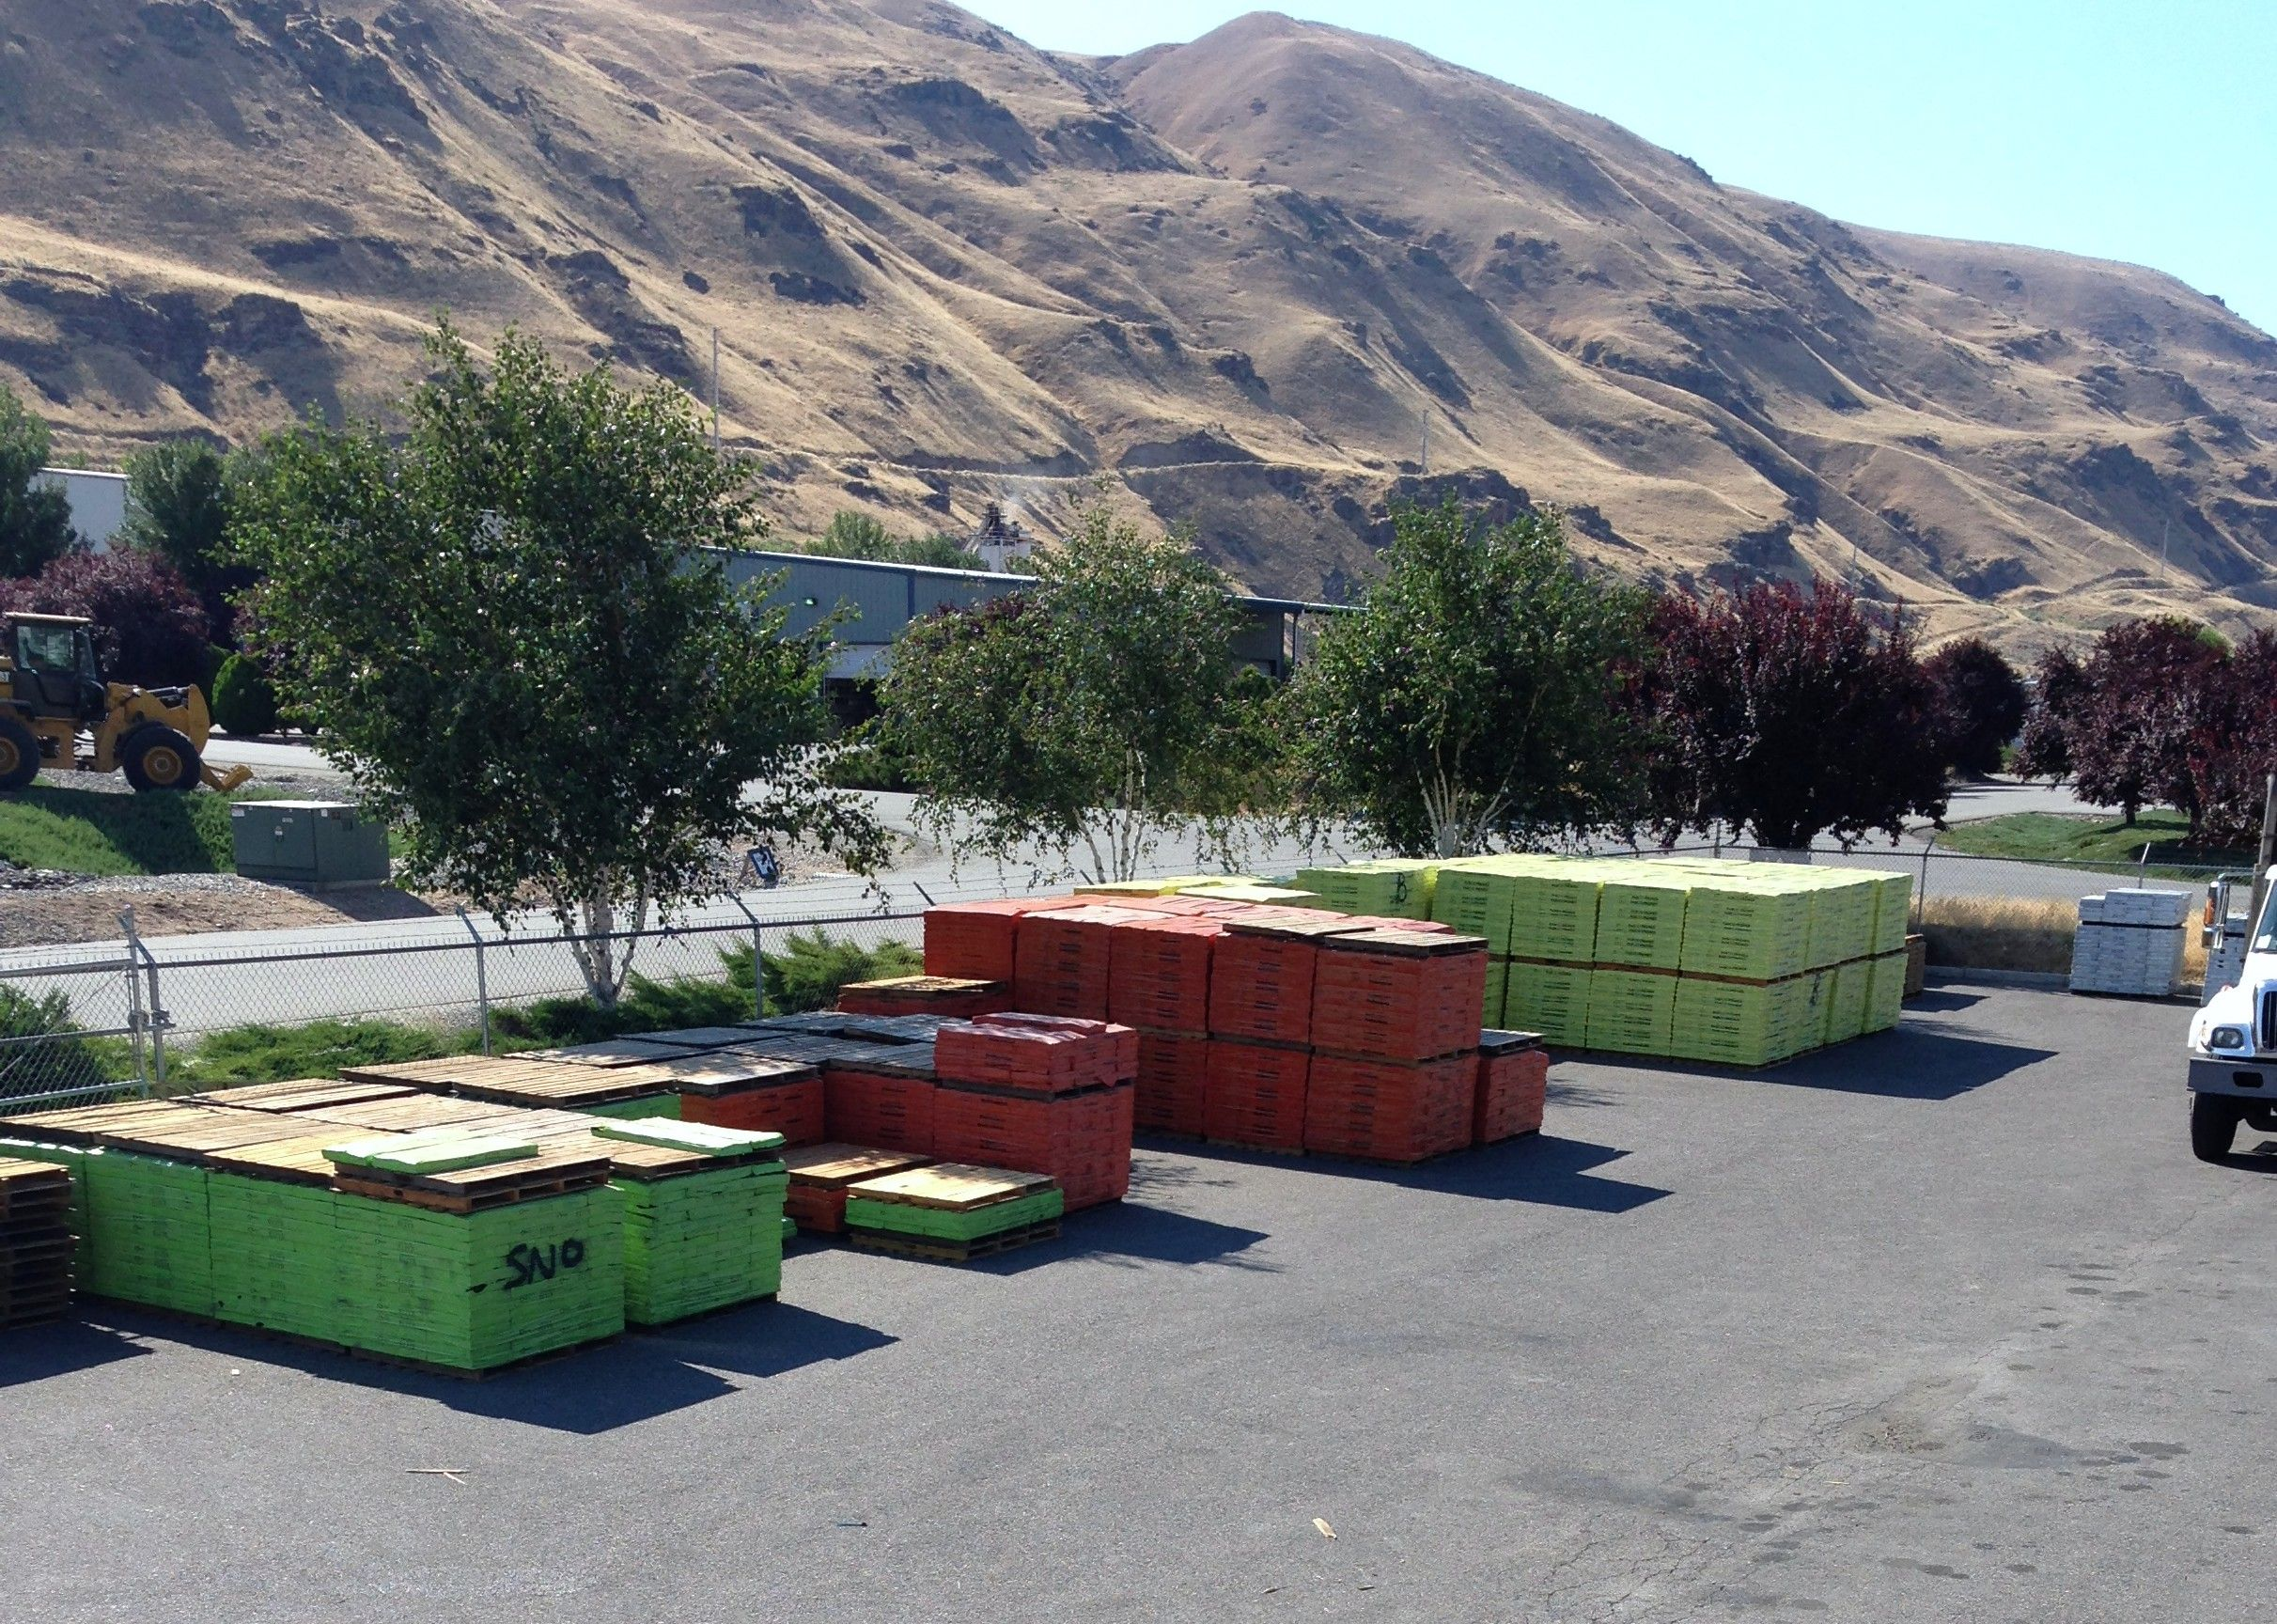 A Colorful Display Of Pabco Roofing Shingles We Are Located At 5534 Baker Flats Road In East Wenatchee Call Us At 509 Home Improvement Windows